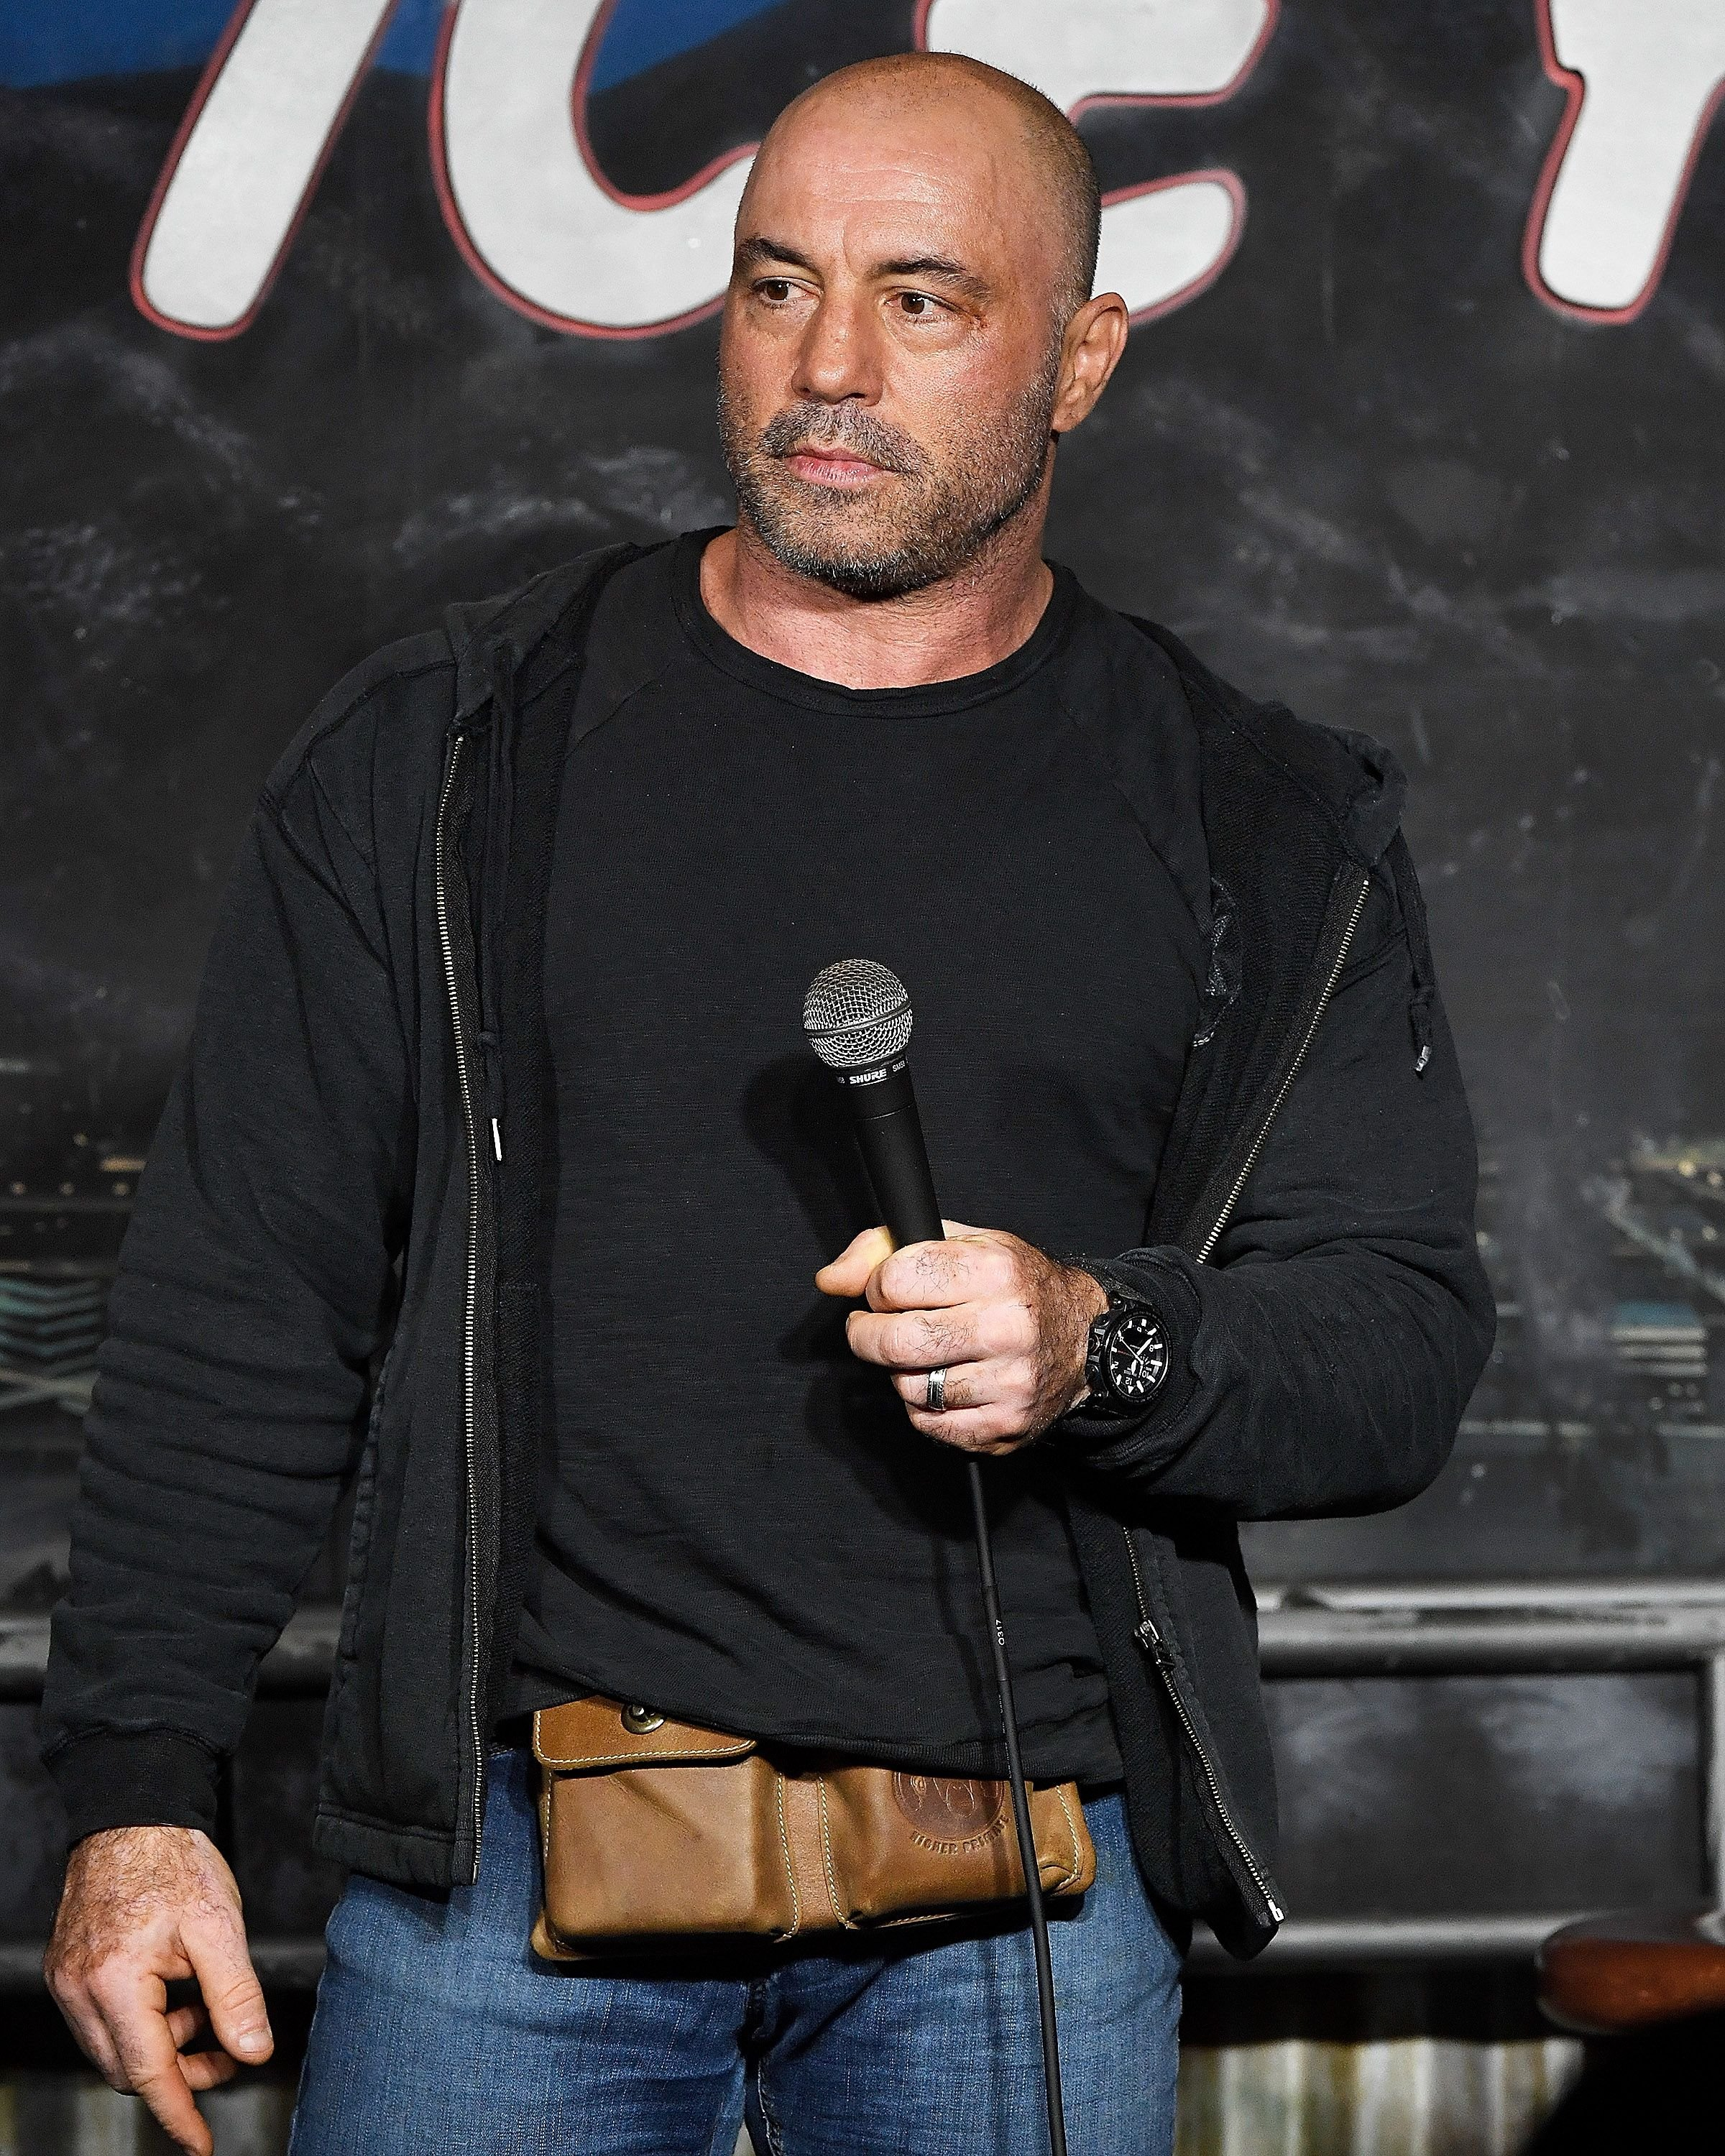 Joe Rogan performing at The Ice House Comedy Club in Pasadena, California   Photo: Michael S. Schwartz/Getty Images